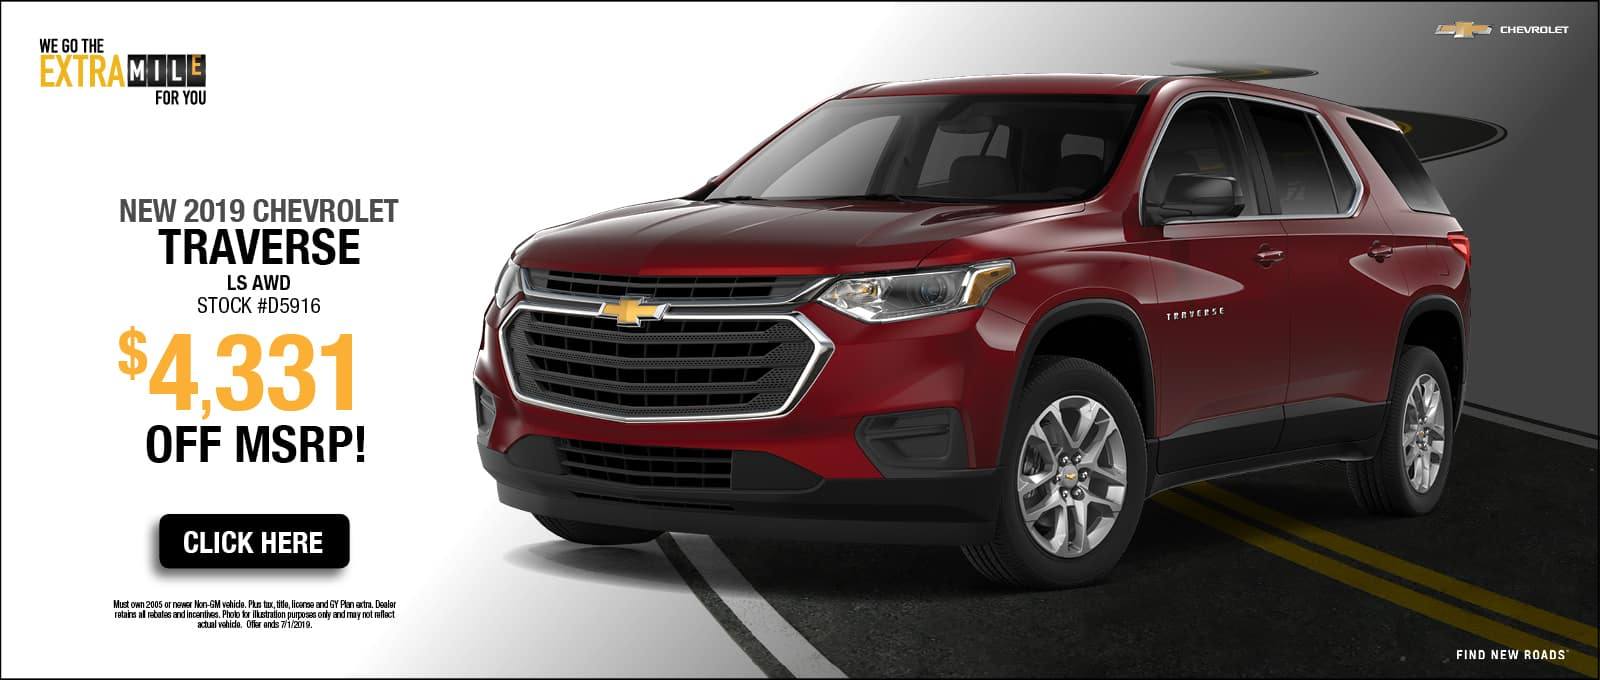 2019 Chevy Travers